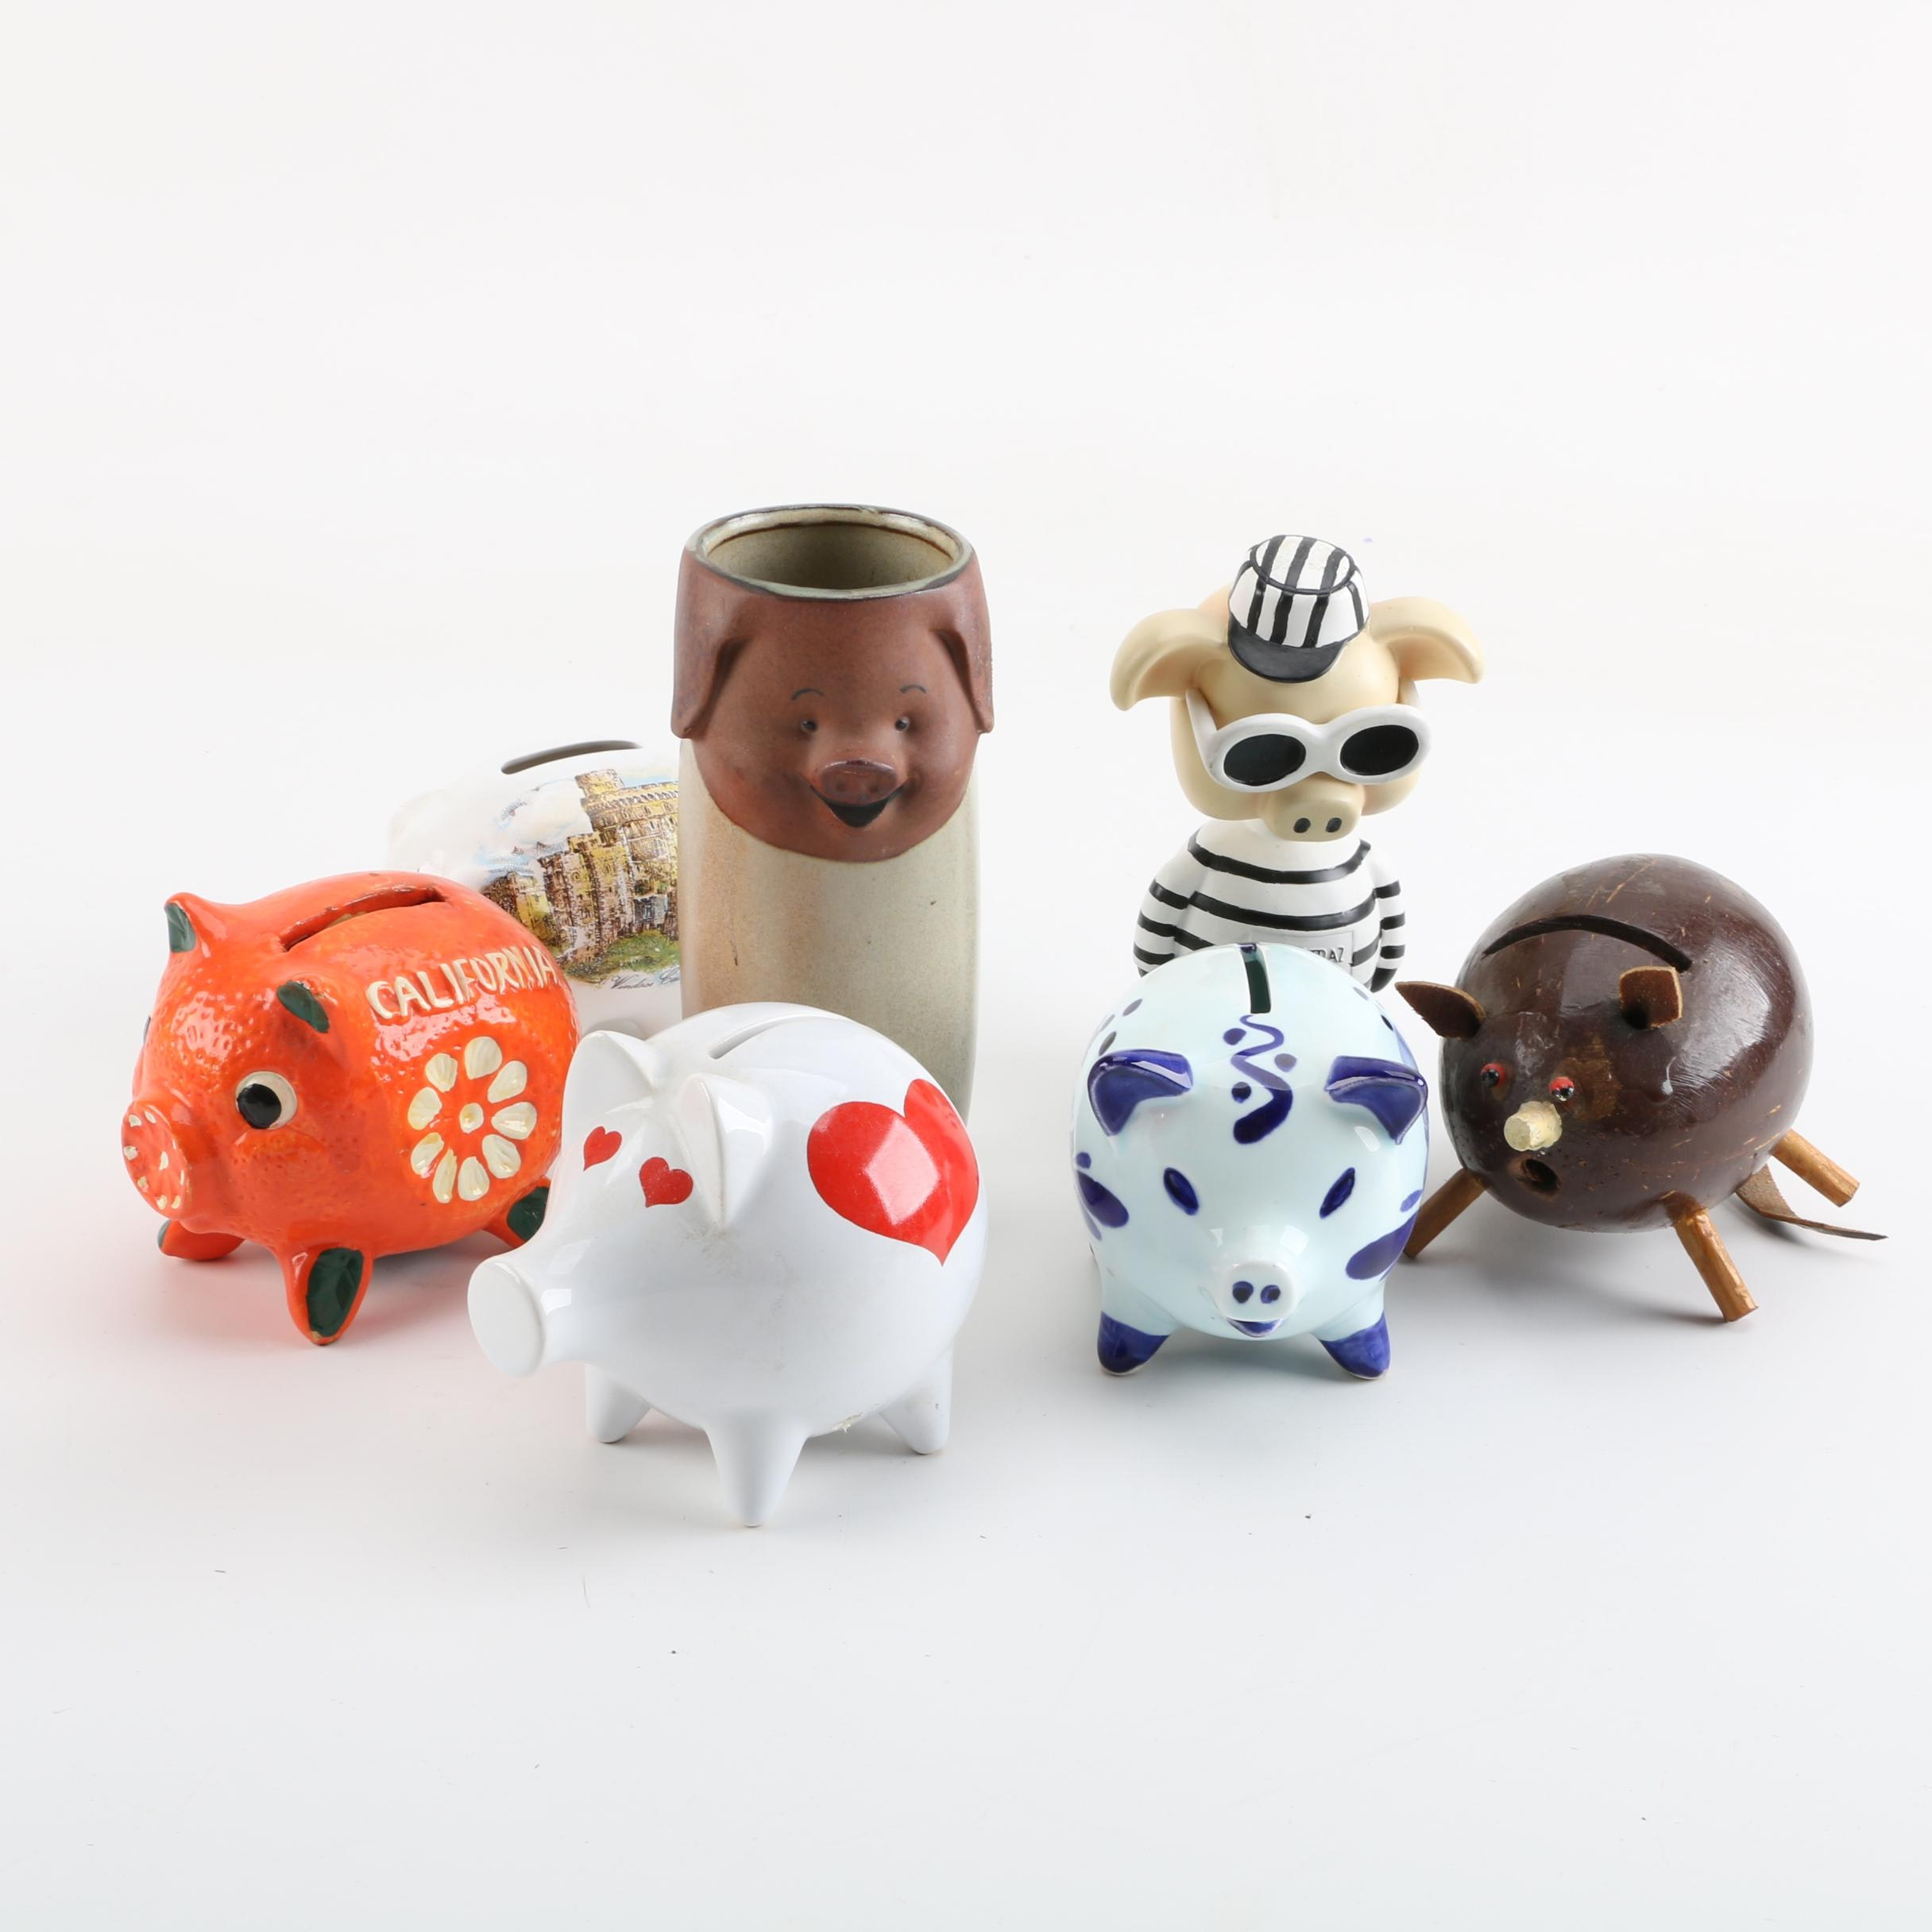 Pig Figurines, Banks and Vase Featuring Waechtersbach